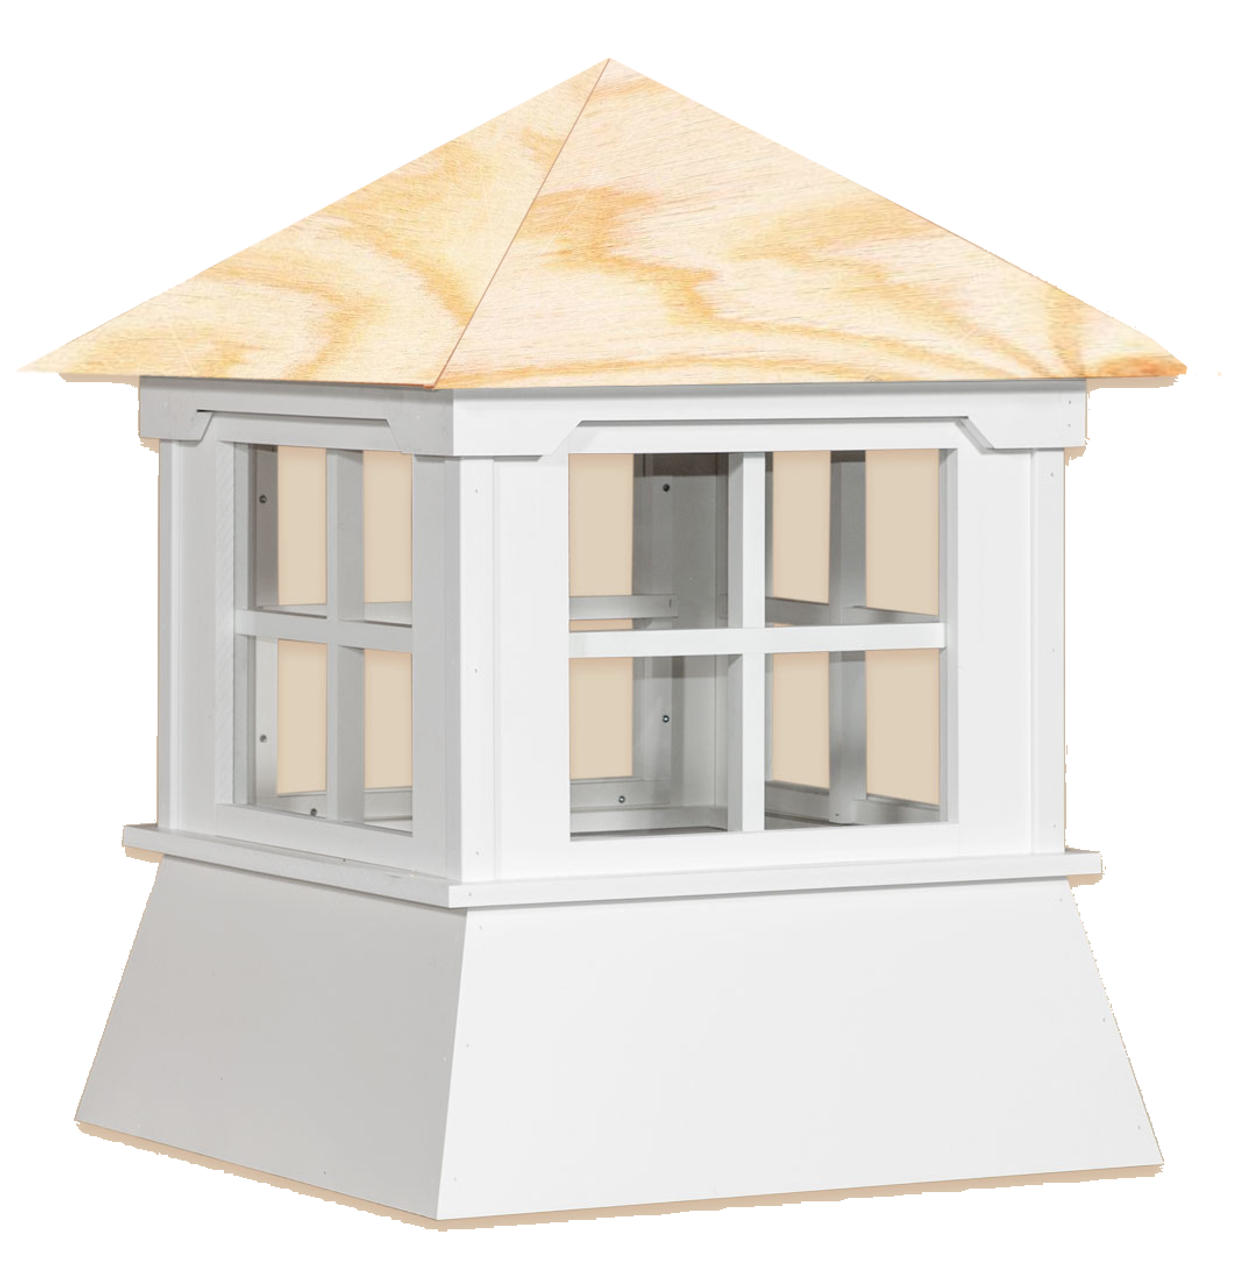 Cupola - Manor Shed: Azek – Windowed Wood Top - 25Lx25Wx30H